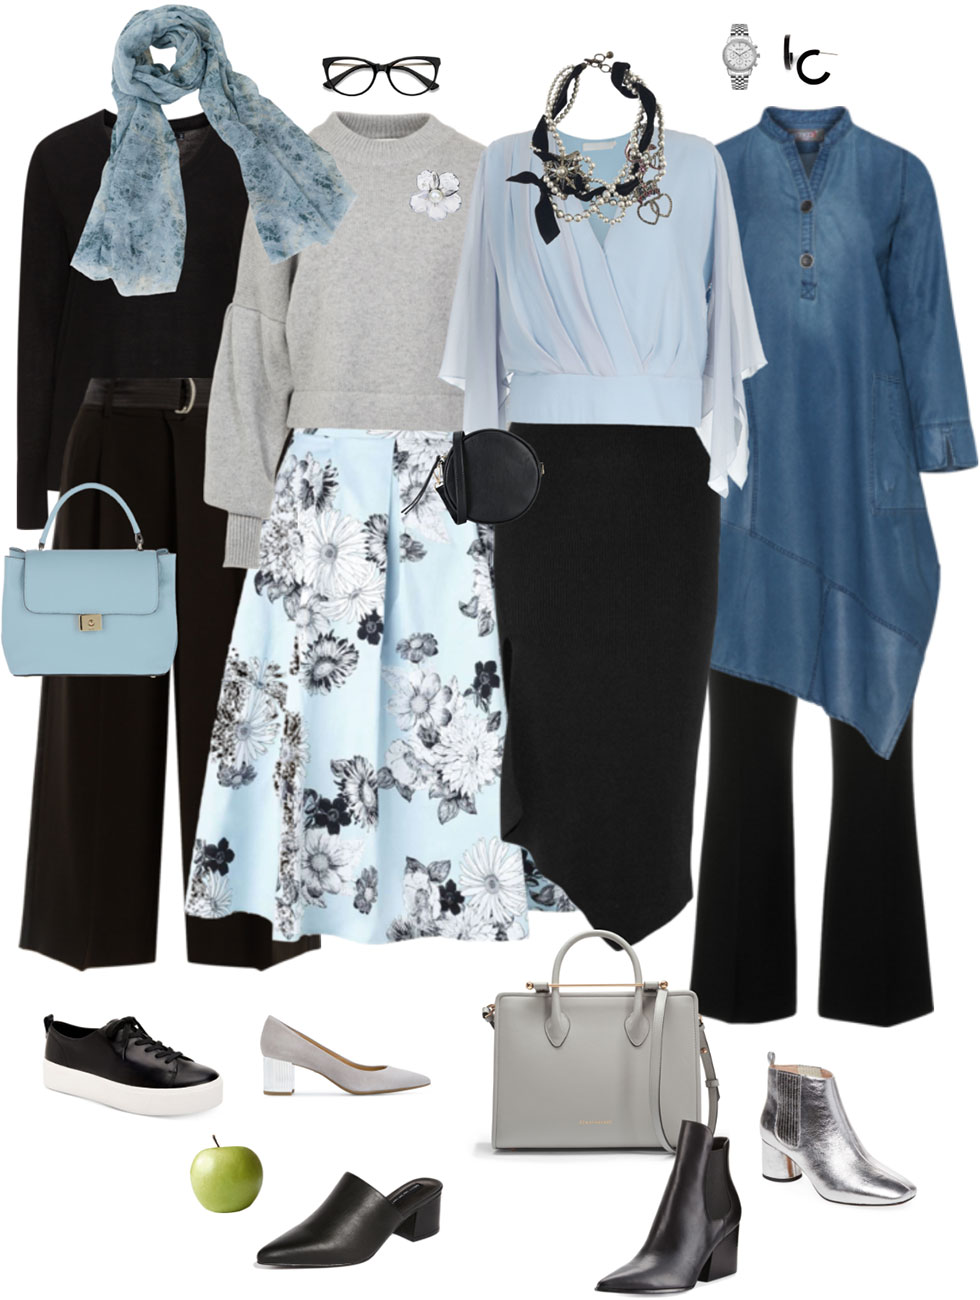 Ensemble Style Advice - Black & Light Blue